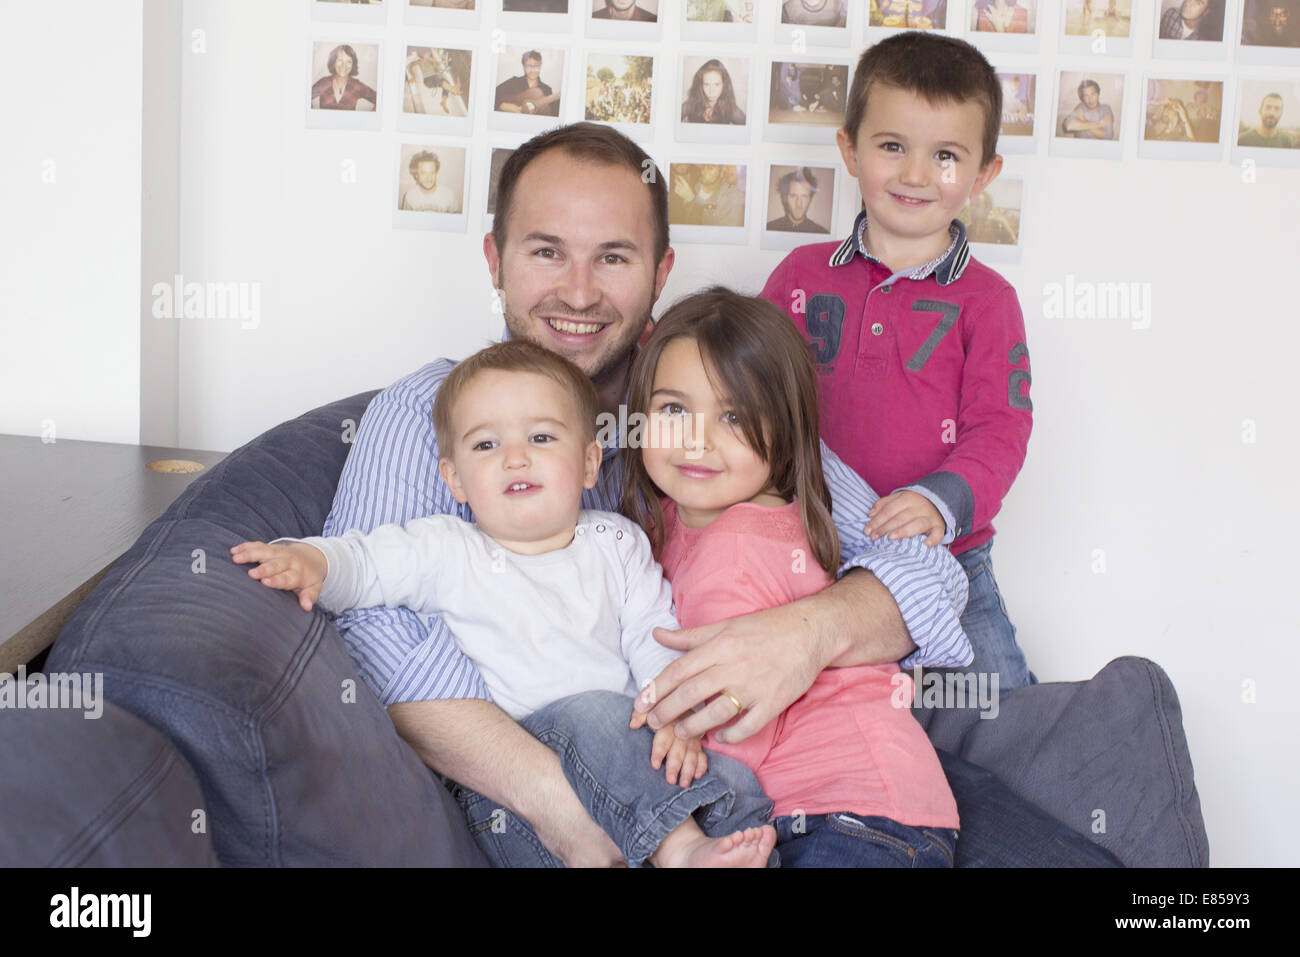 Father and children sitting together on sofa, portrait - Stock Image